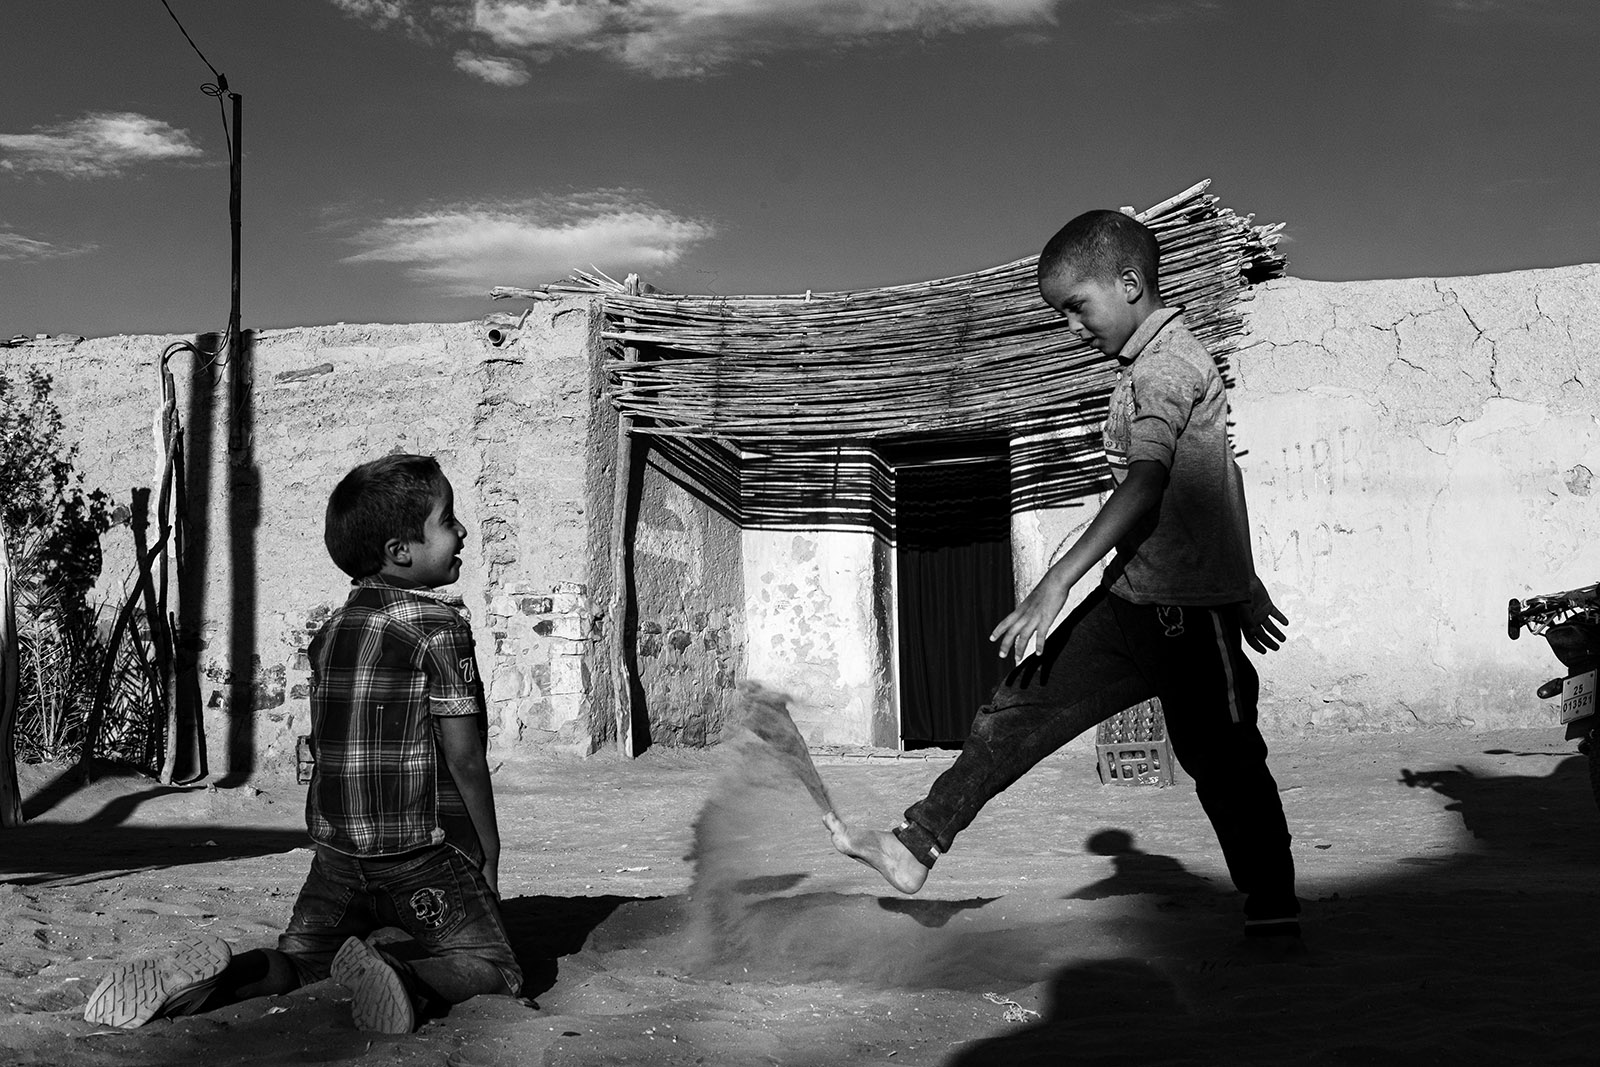 Boys at play, Tafraoute, Morocco